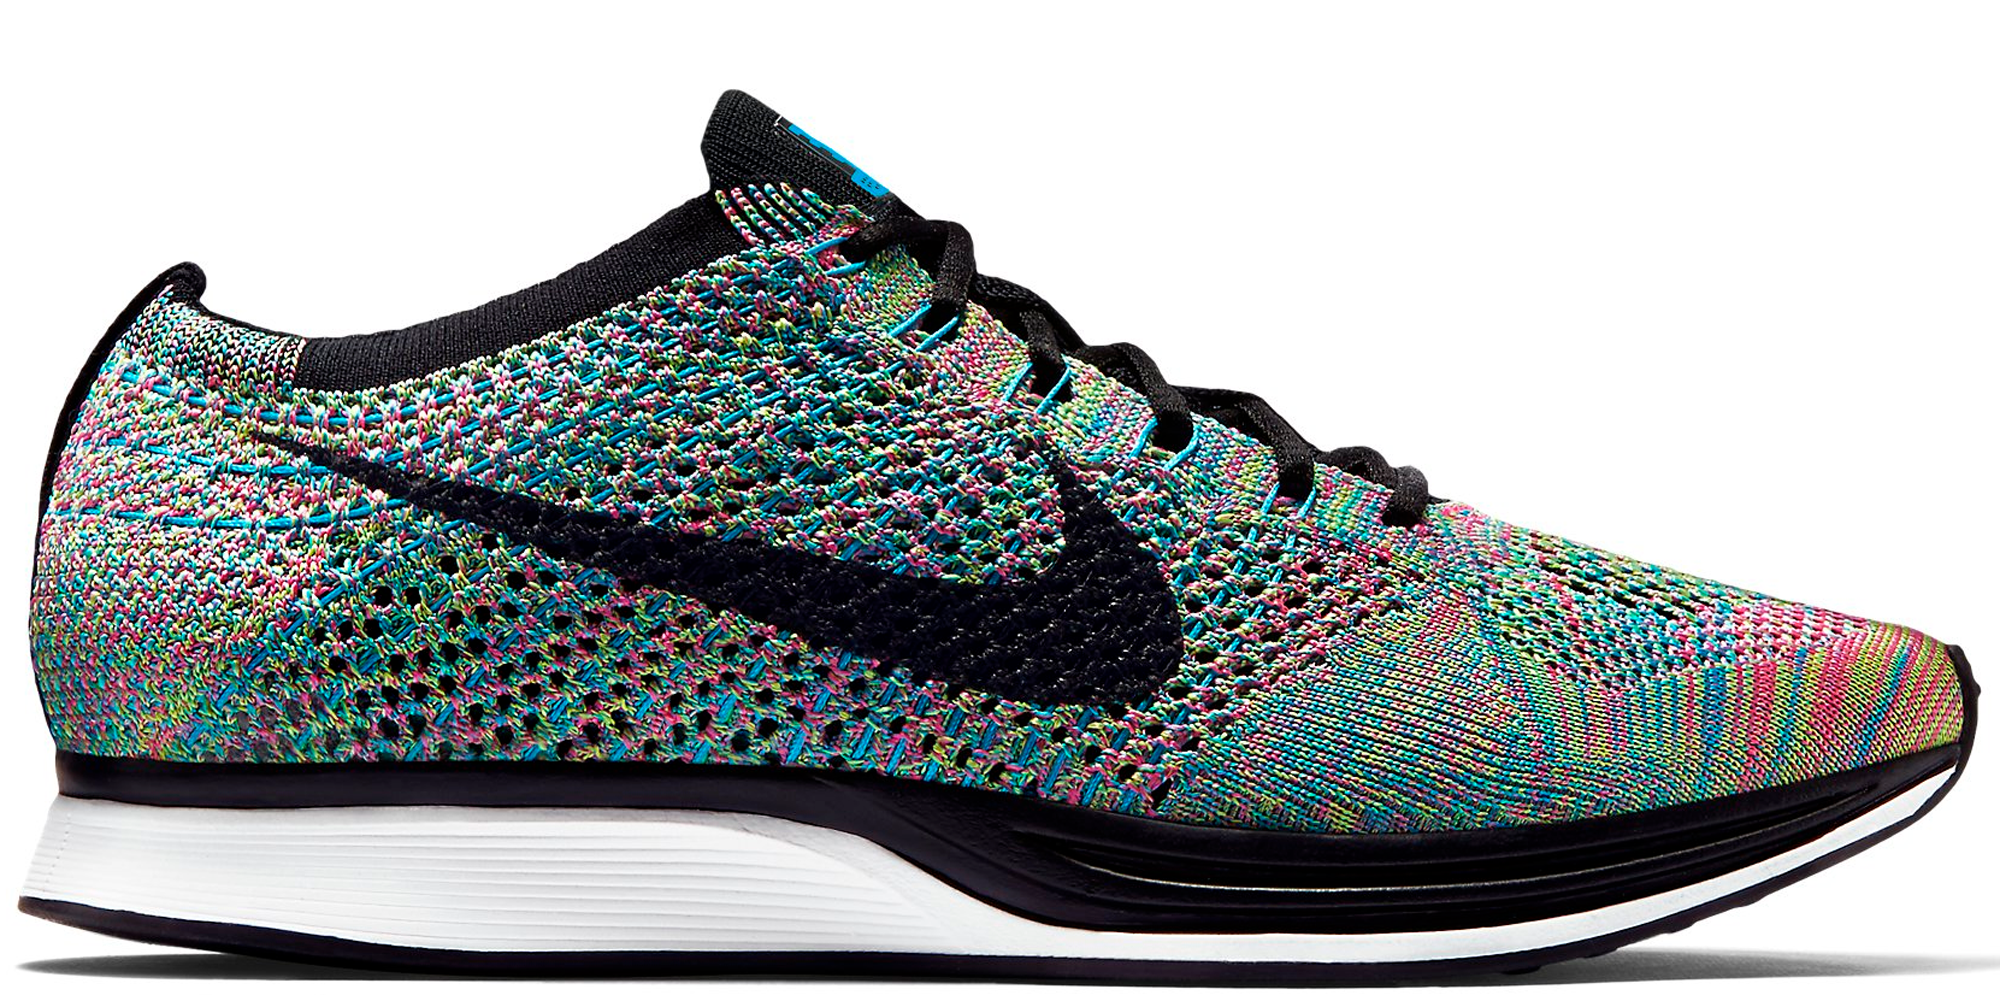 0d6a28ed3f7d Nike Flyknit Racer Multi-Color 2.0 (2017) - StockX News